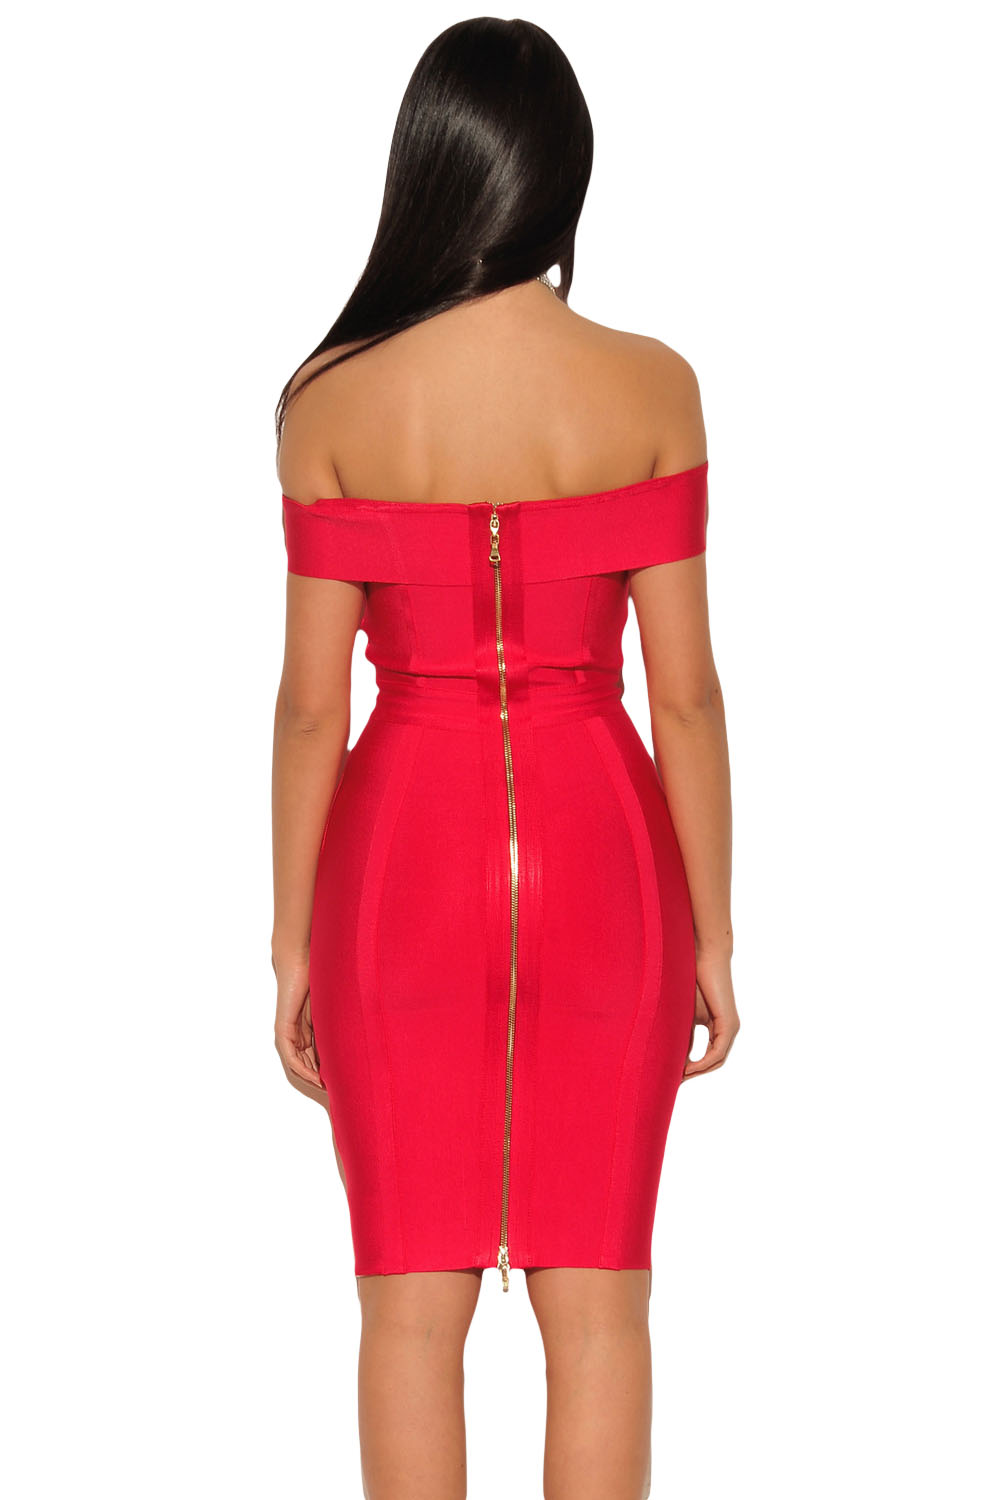 Gold Chain Crisscross Lace up Red Bandage Dress